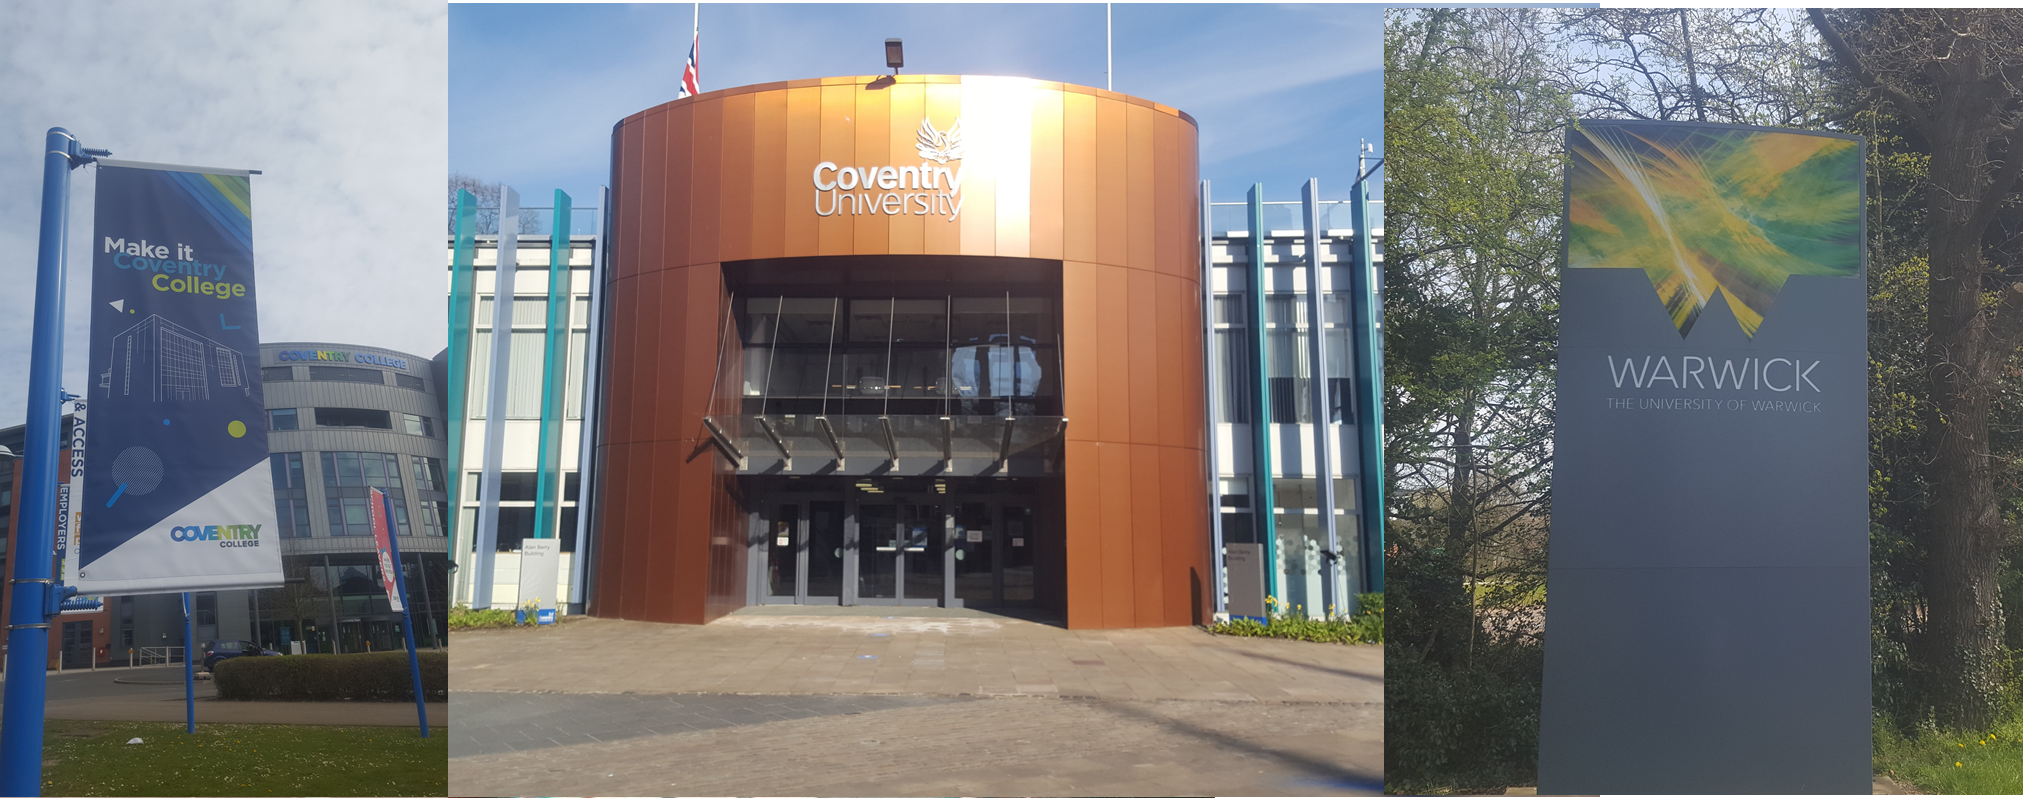 Education: Coventry College, Coventry University and the University of Warwick.